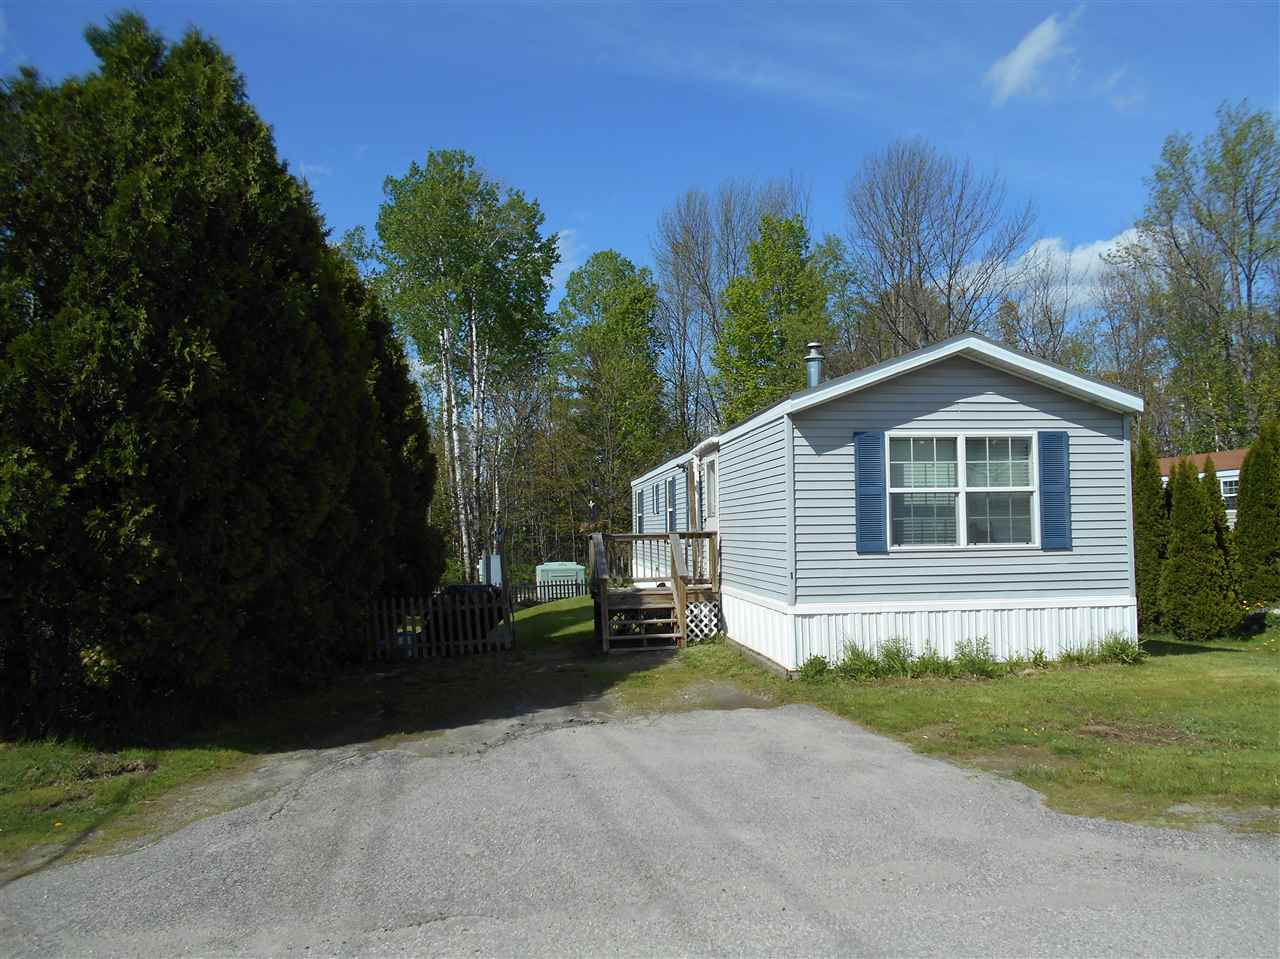 1 Hilltop Manor Street Road 013-M01, Whitefield, NH 03598